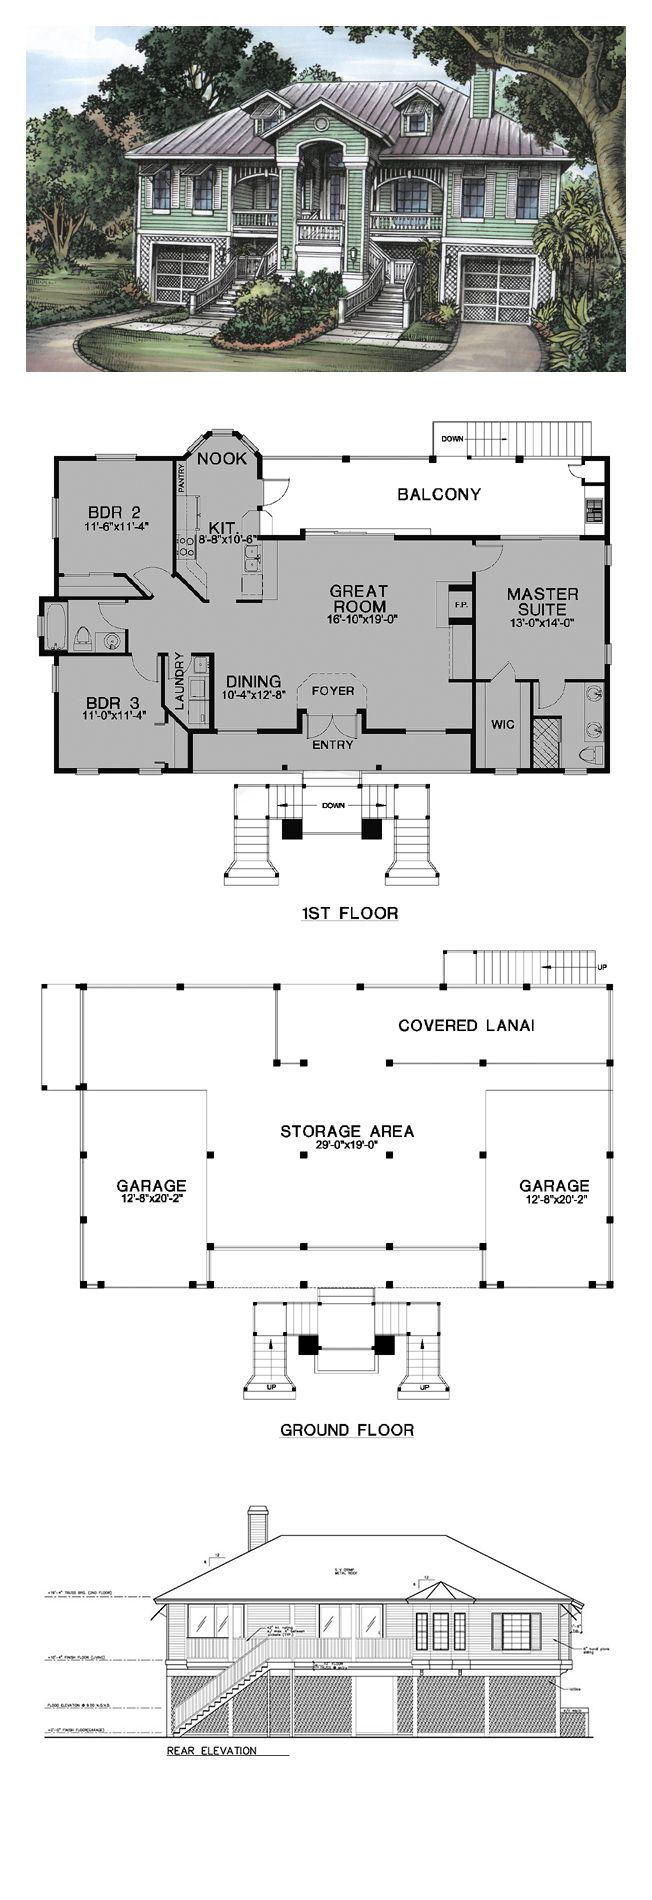 16 best florida cracker house plans images on pinterest cool florida cracker style cool house plan id chp 24536 total living area